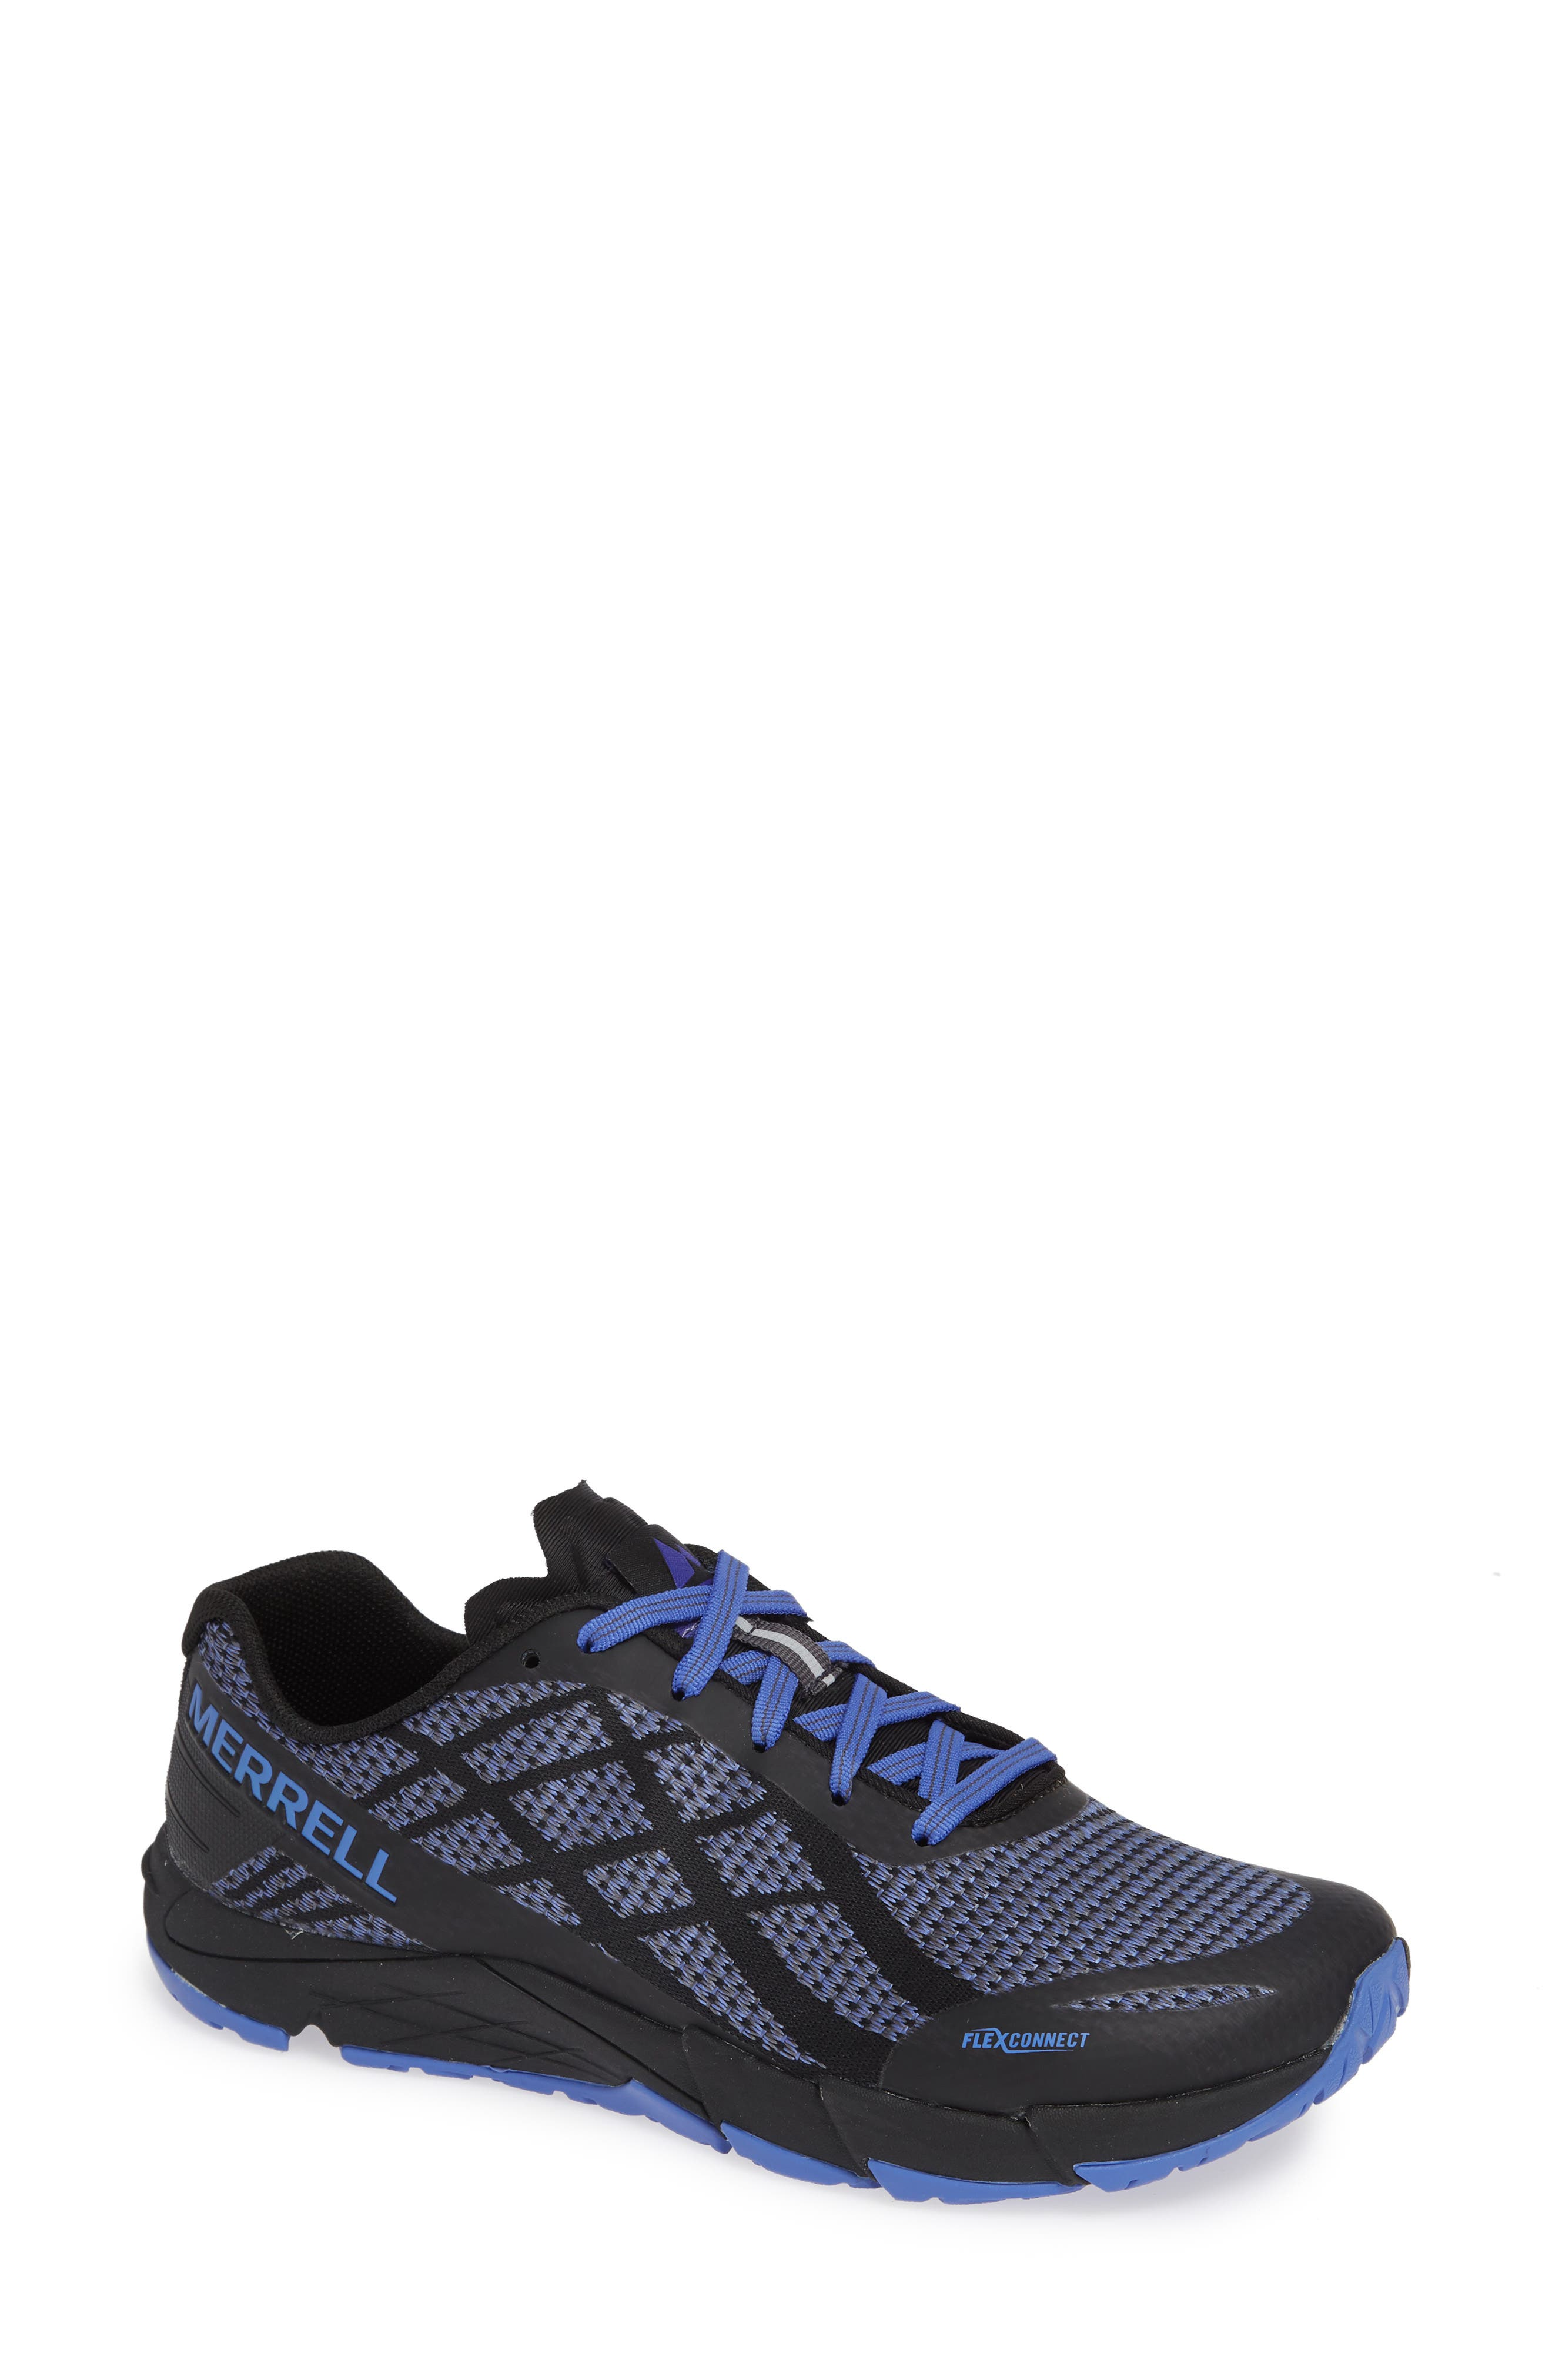 MERRELL Bare Access Flex Shield Lace-Up Sneaker, Main, color, BLACK AND WHITE FABRIC